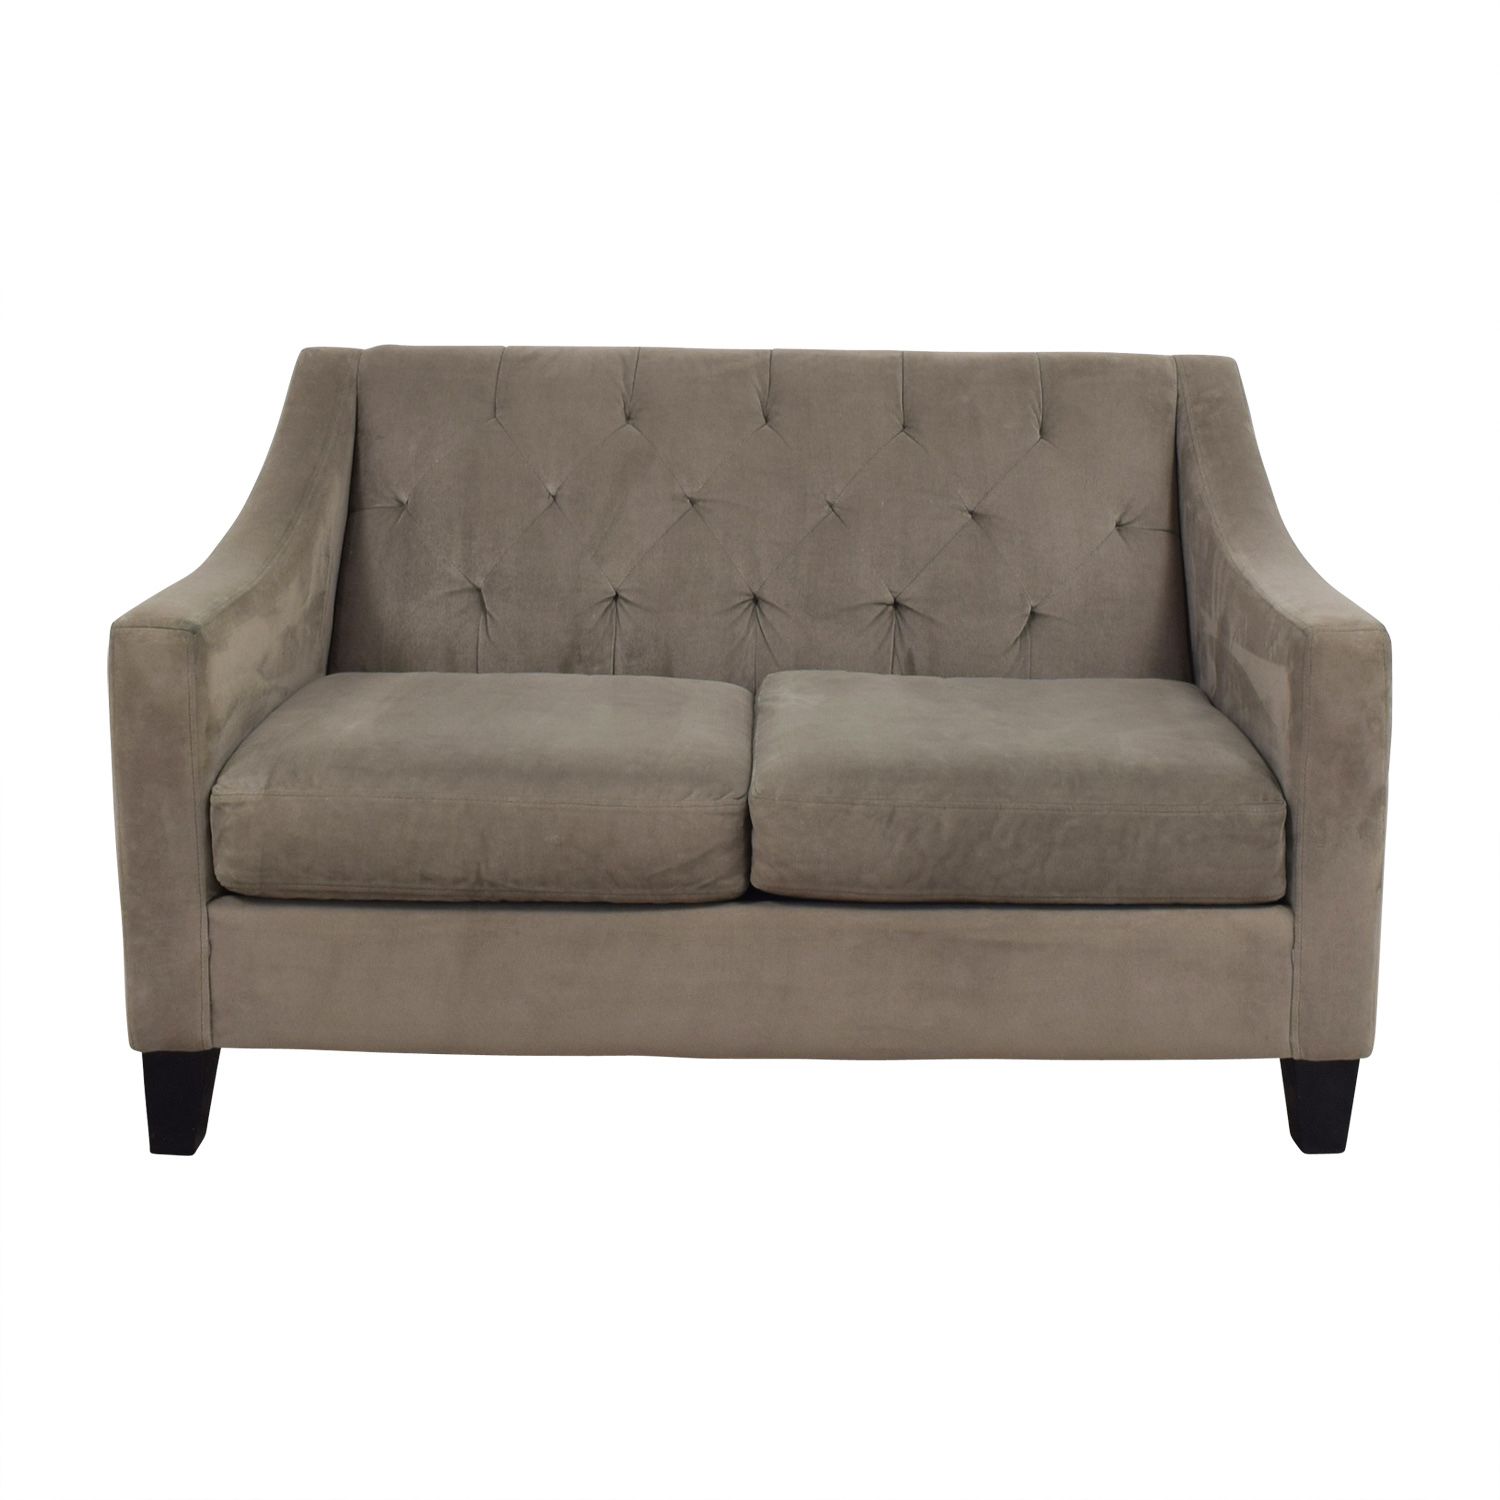 two cushion sofa 67 off bsc furniture beige two cushion